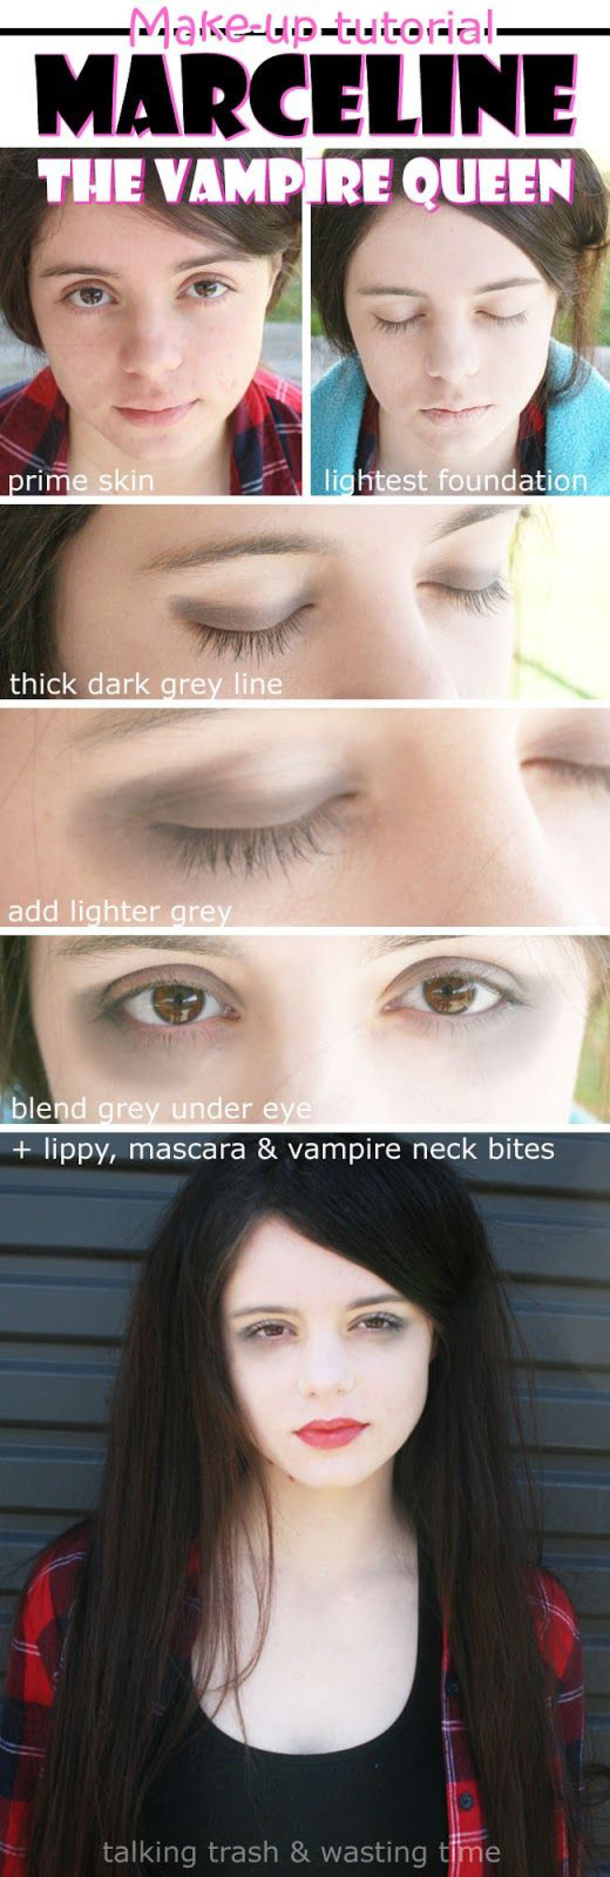 Easy Halloween Makeup Scary.50 Scary Halloween Makeup Ideas